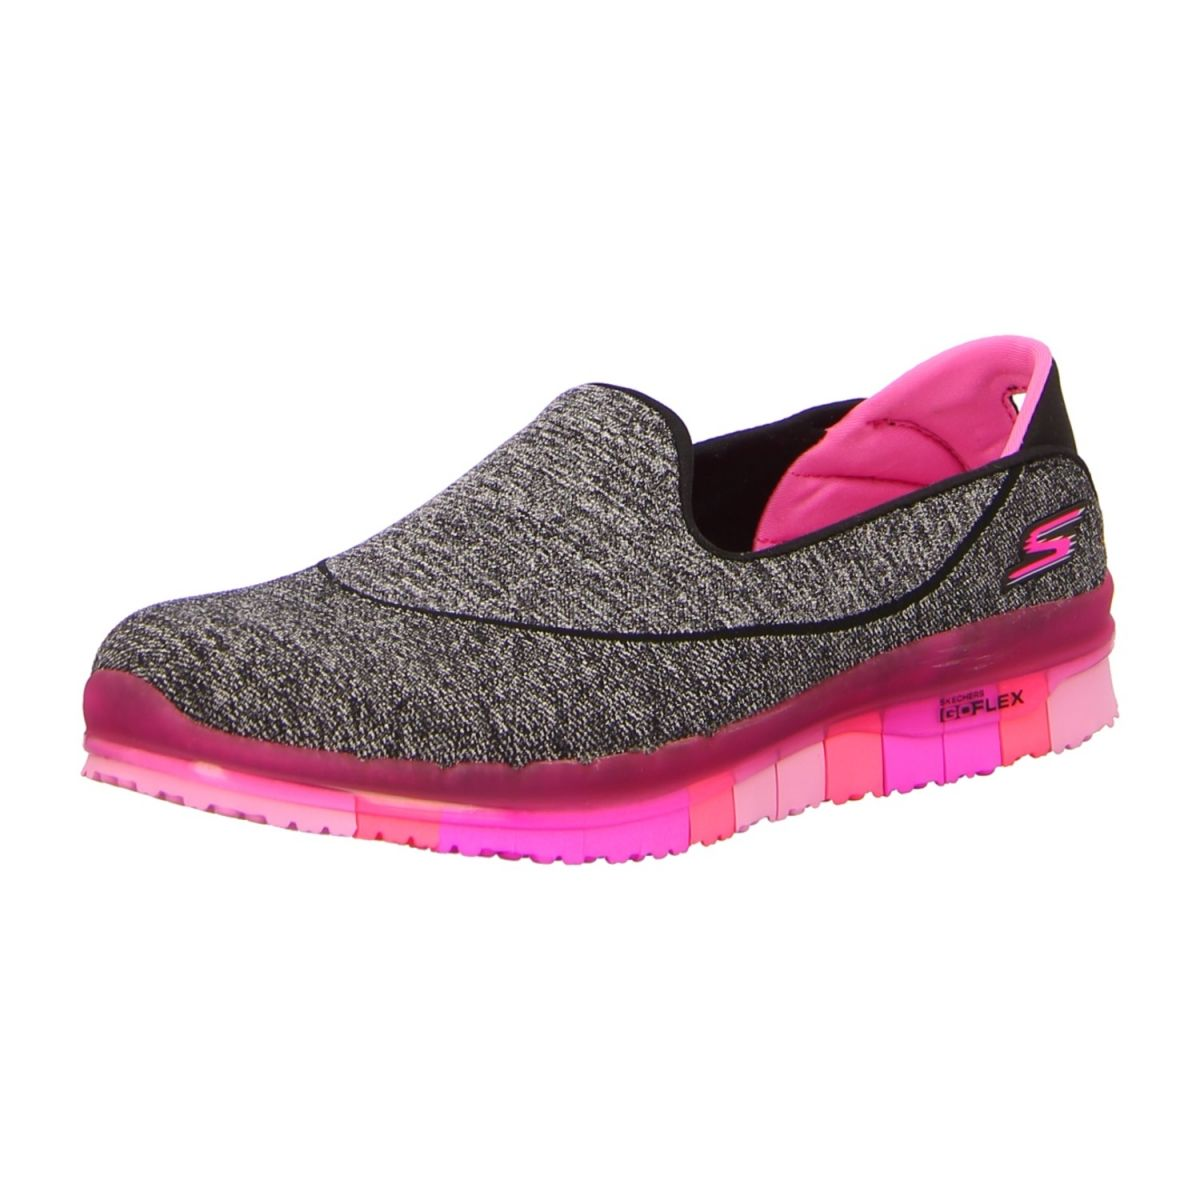 NEU: Skechers Sneaker Slipper GoFlex - 14010 BKHP - black/hot pink -